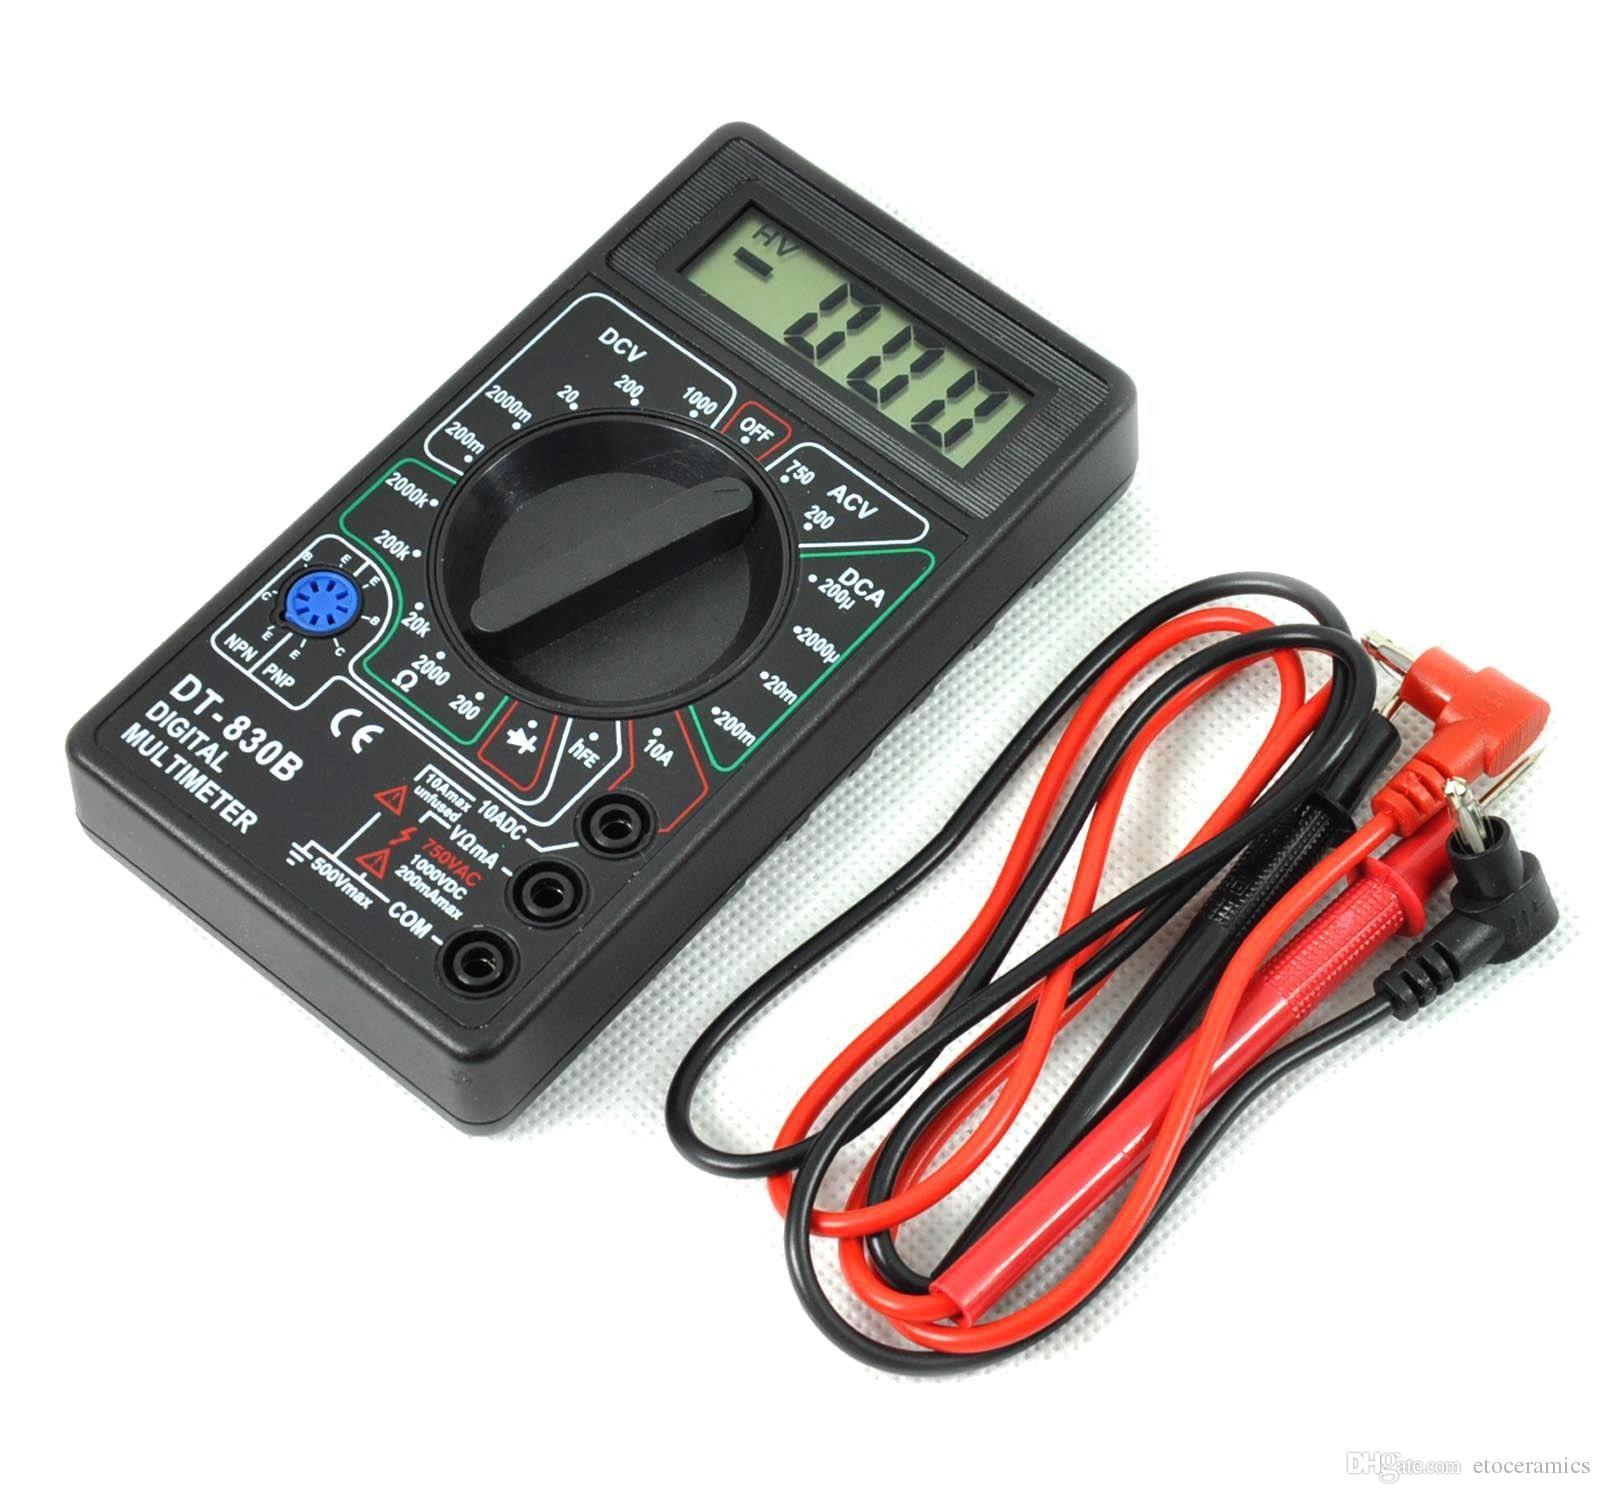 Dt830b Multimeters Ammeter Voltmeter Ohm Electrical Tester Meter Lcd Digital Multimeter Schematic Free Electronic Circuits 8085 Online With 313 Set On